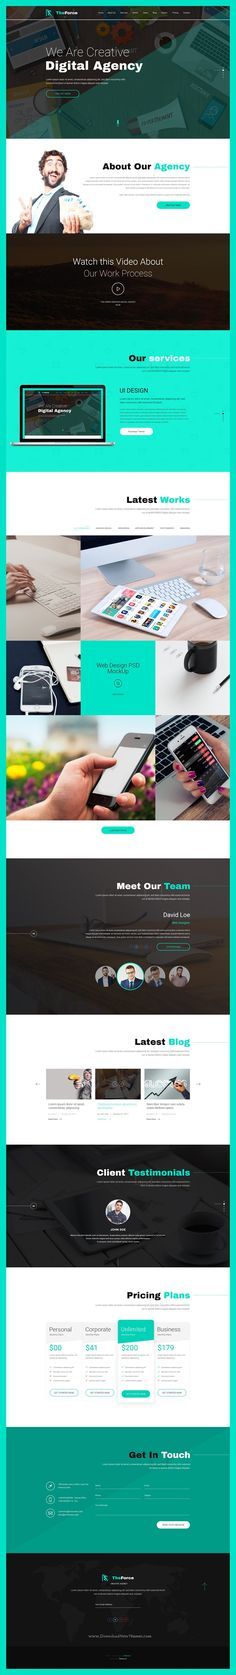 TheForce is a wonderful #PSD template for stunning digital #agencies, creative business, freelancer portfolio showcase website download now➩  https://themeforest.net/item/theforce-digital-agency-personal-app-landing-psd-template/19484555?ref=Datasata